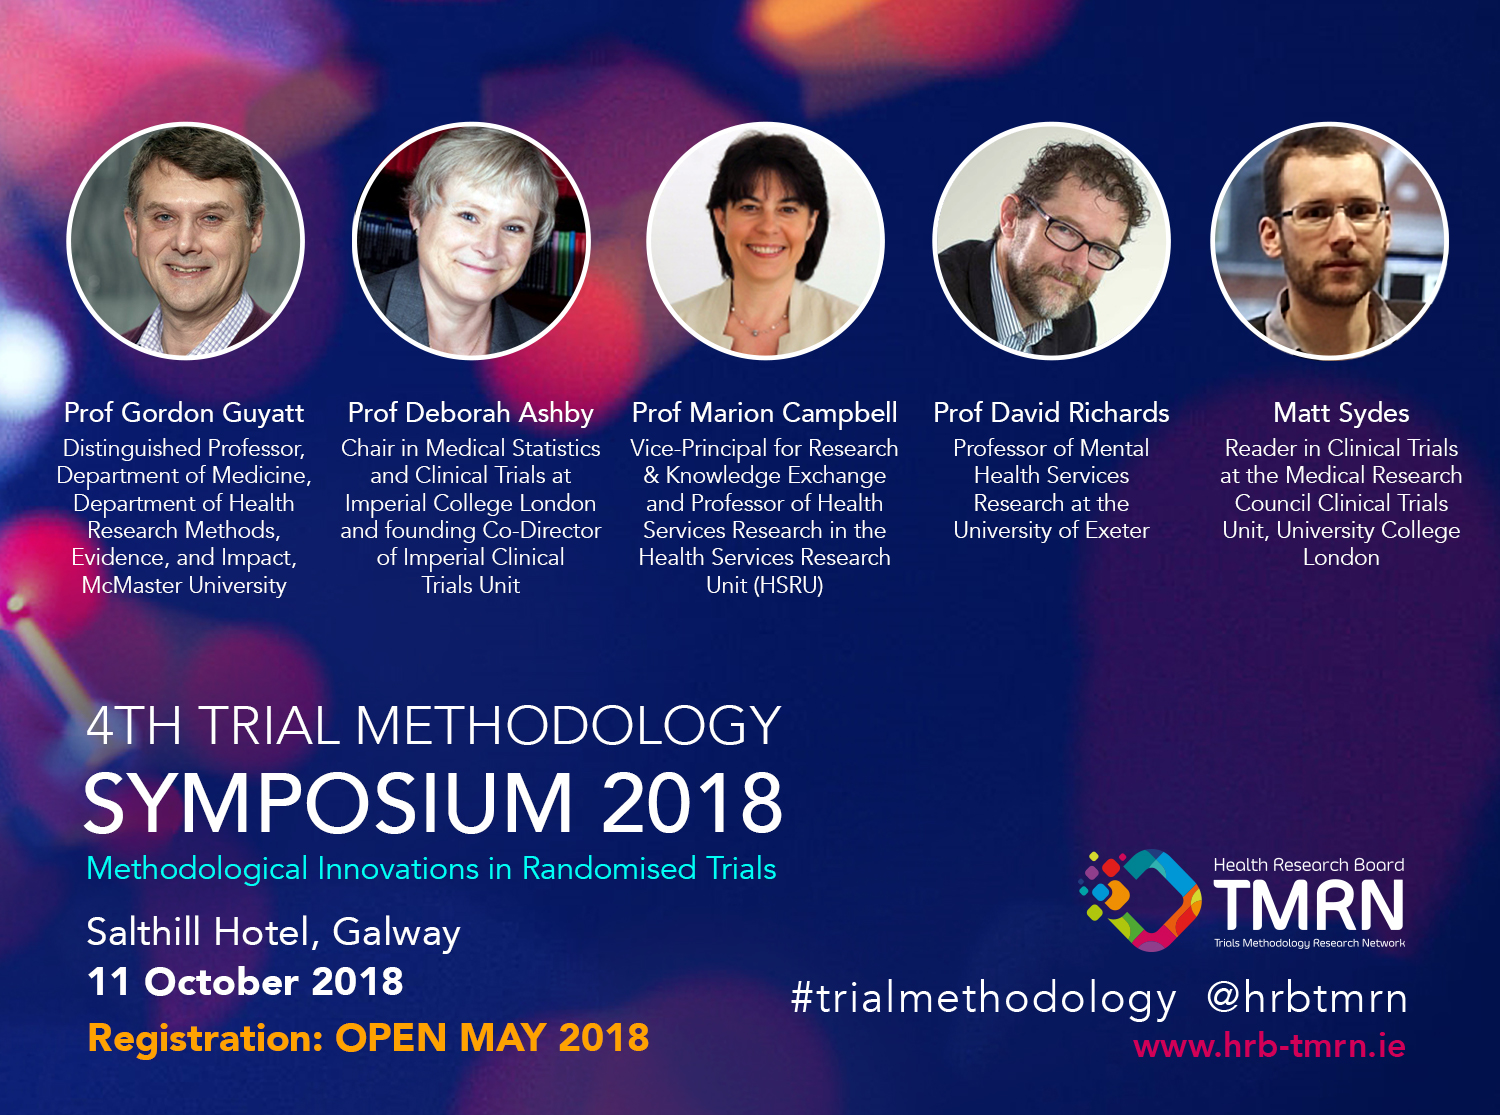 Speakers for the HRB-TMRN 4th Annual Trial Methodology Symposium